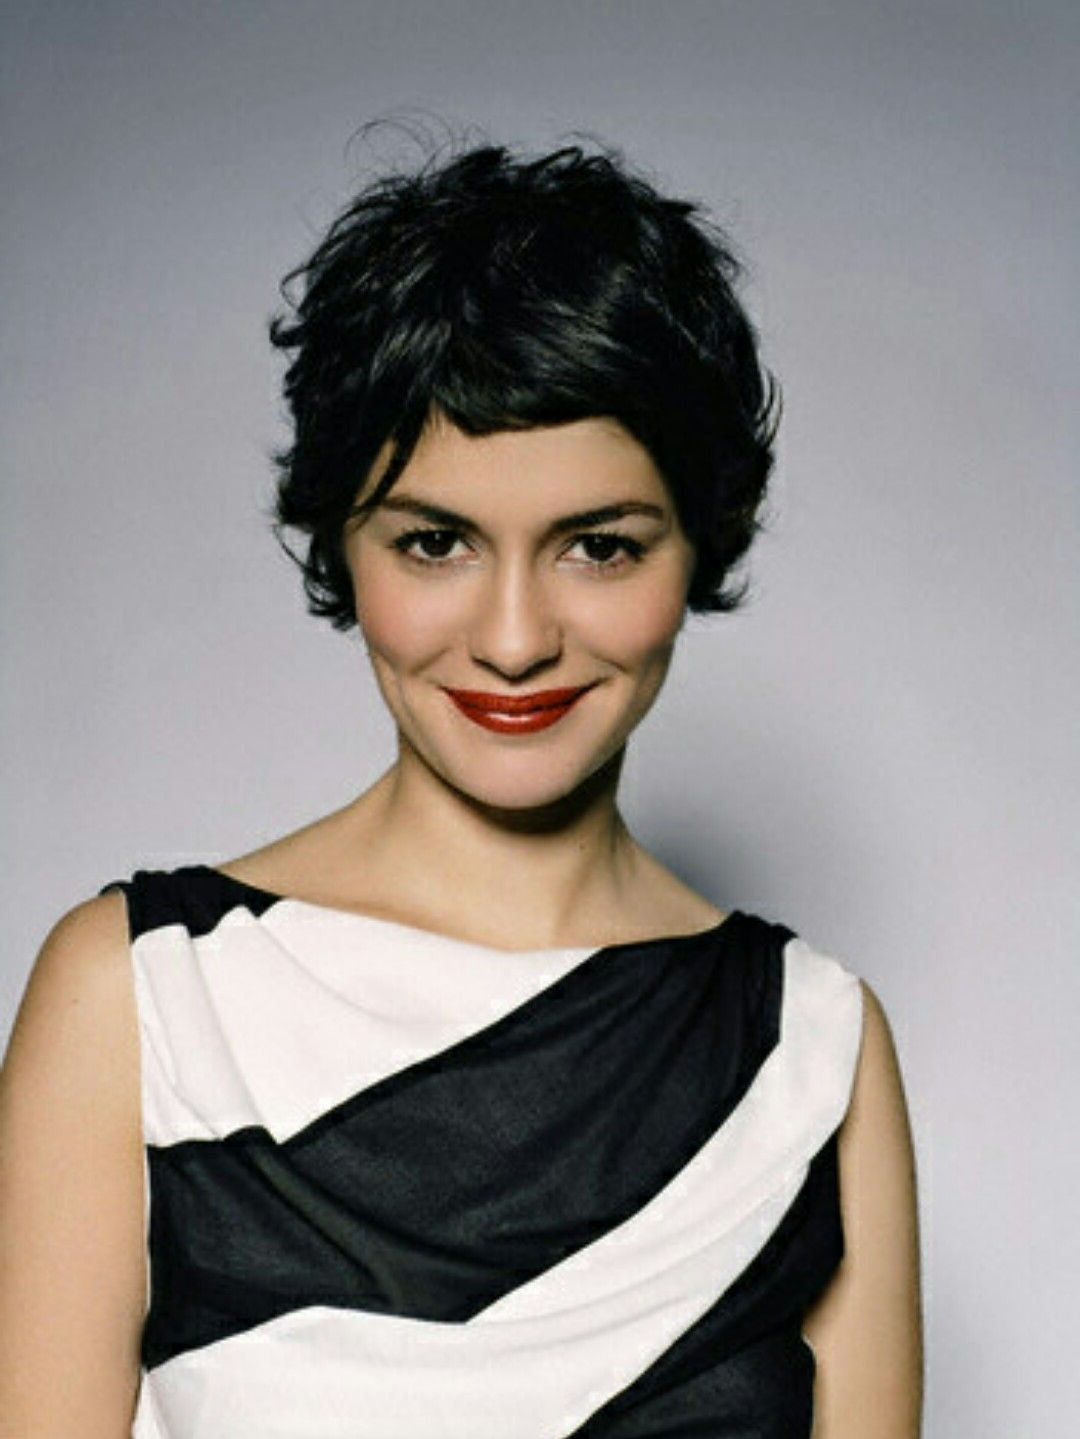 Image Result For Audrey Tautou Cheveux Courts | Haircut | Pinterest With Audrey Tautou Short Haircuts (View 2 of 25)